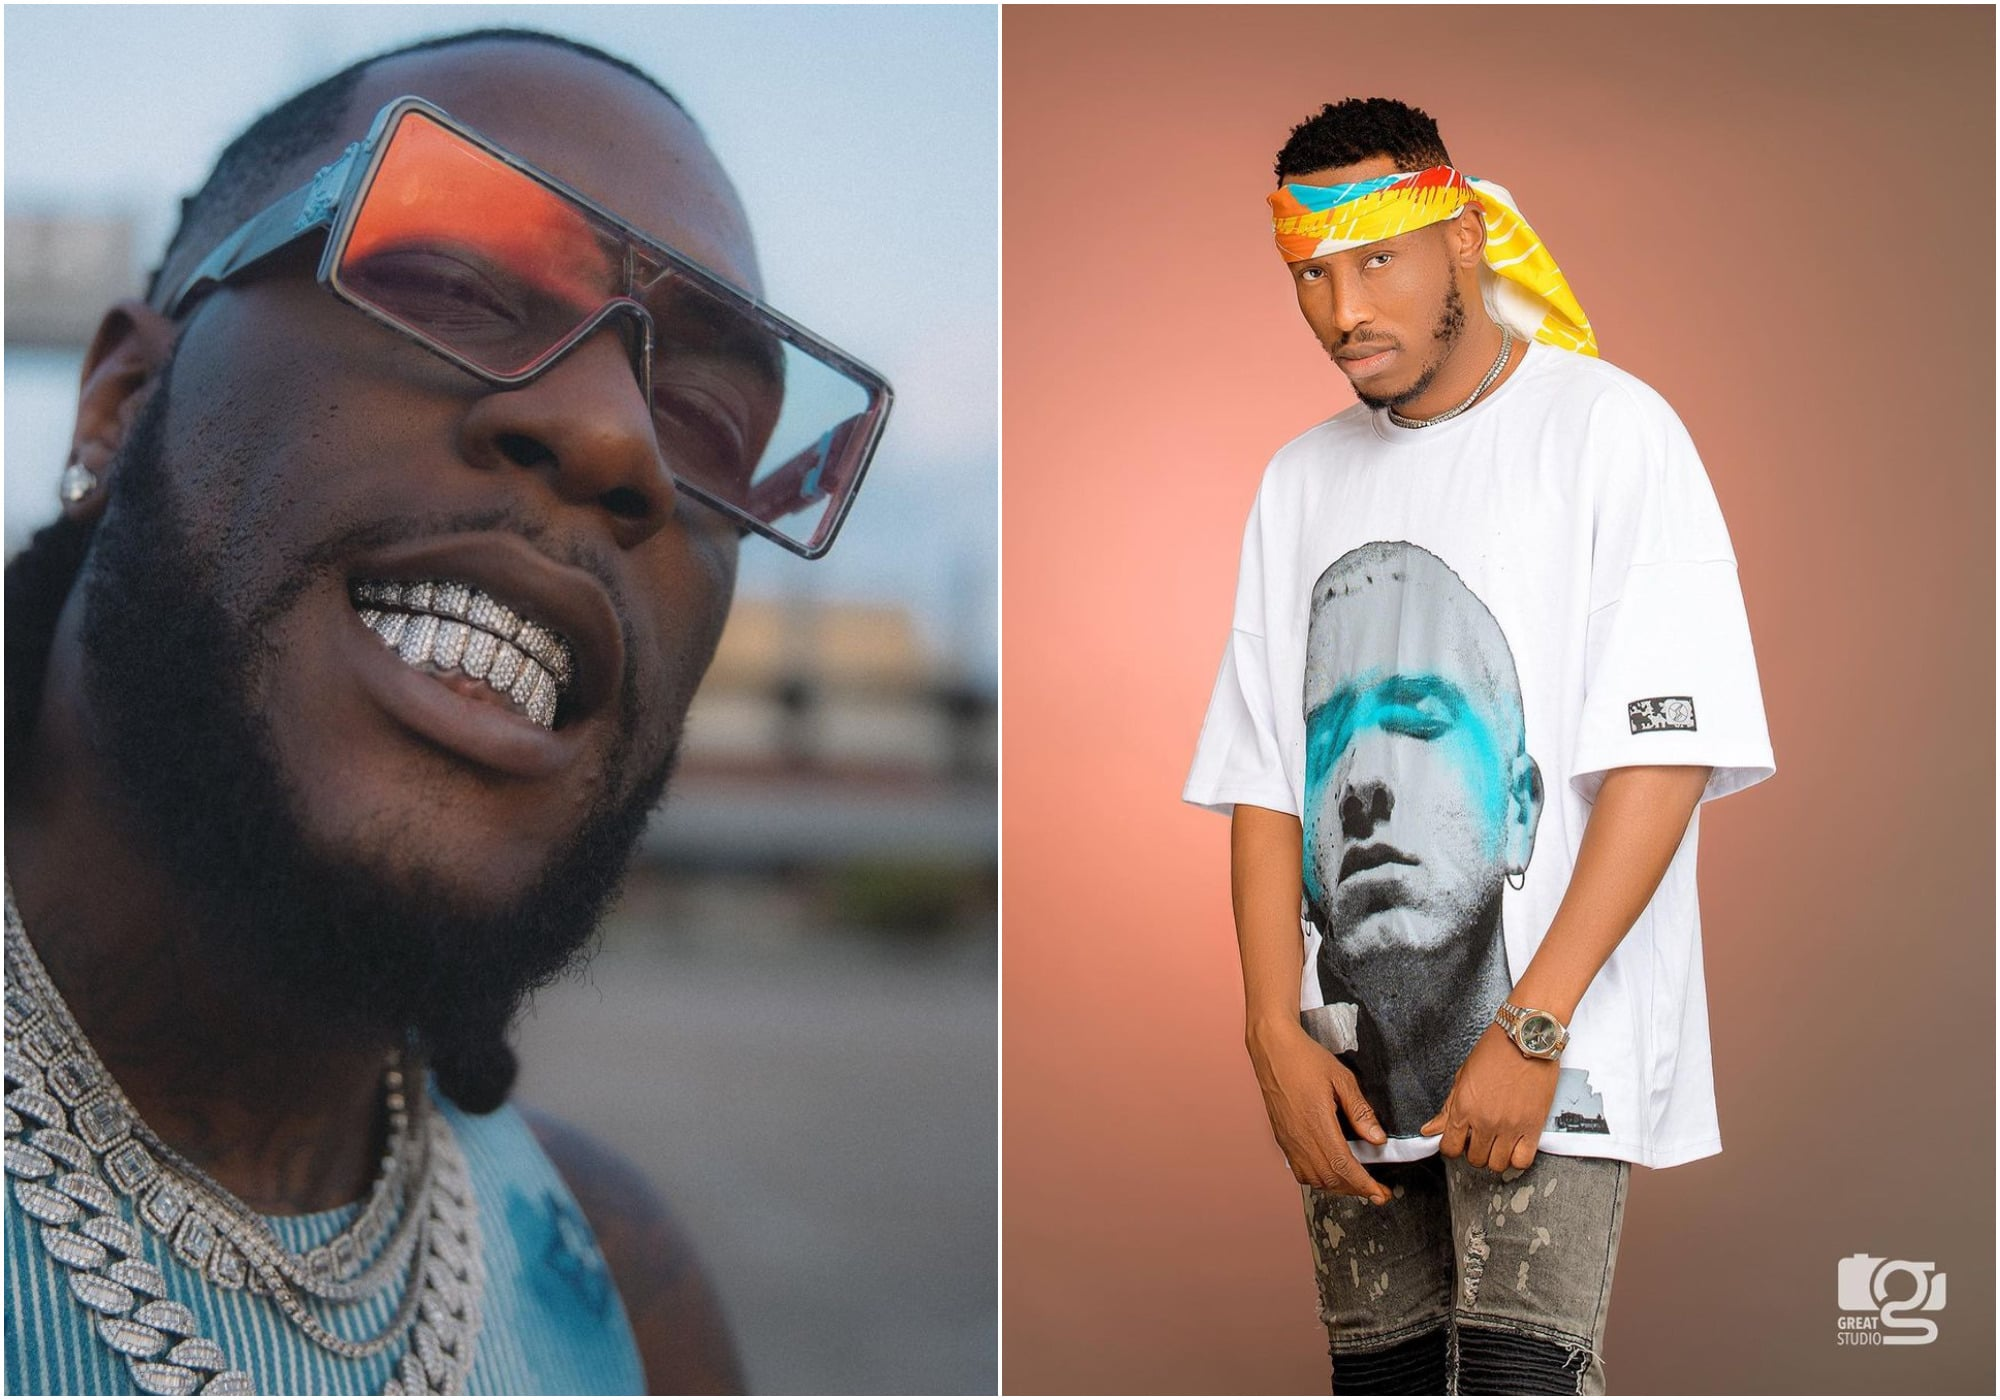 Burna Boy and Mr 2Kay spotted together after four years of messy beef